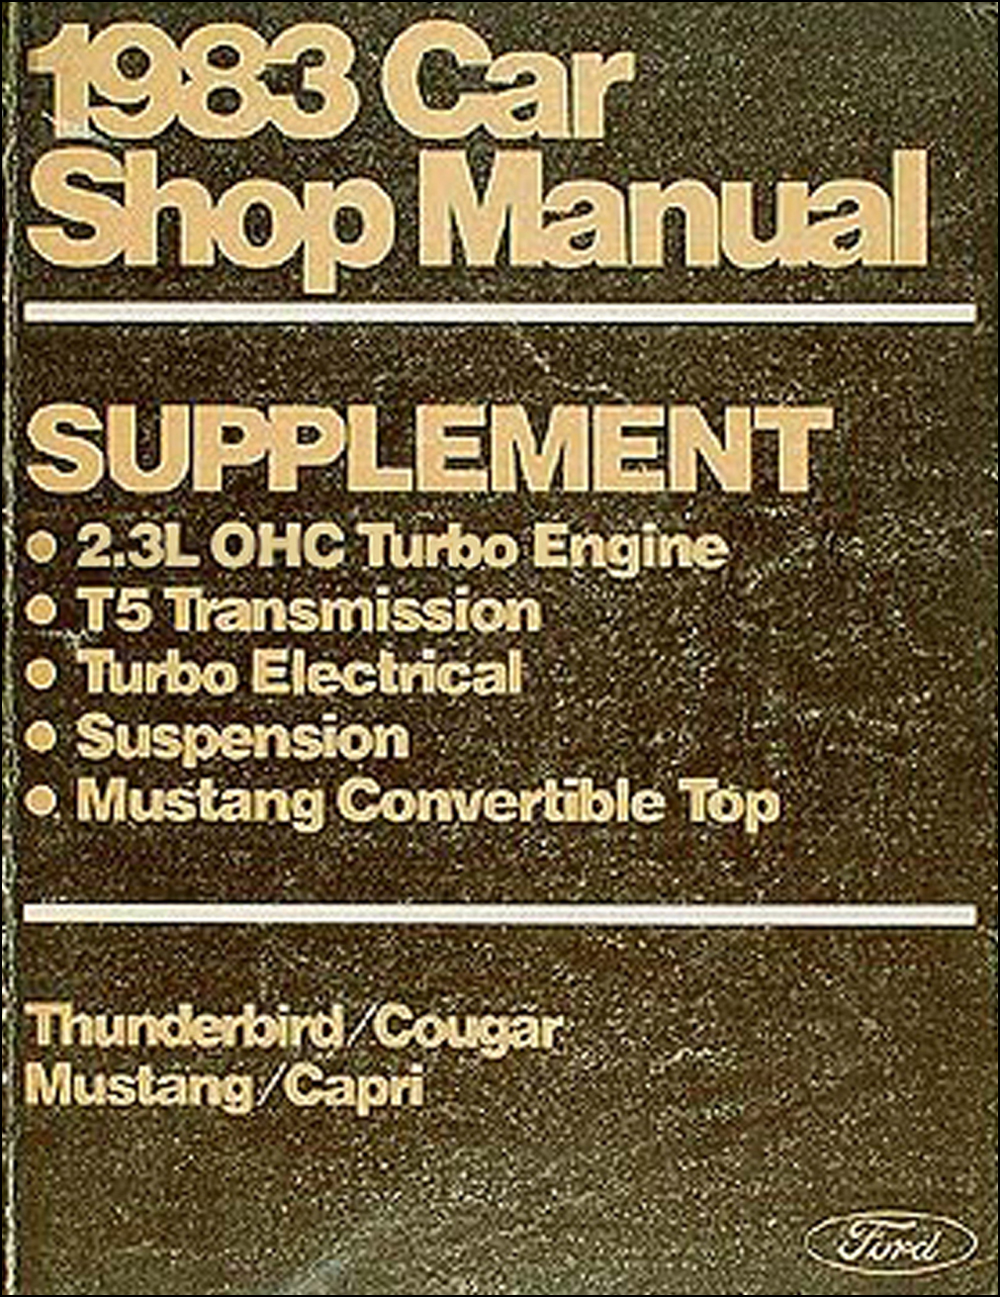 1983 Ford Mustang Mercury Capri Foldout Wiring Diagram Original Ac T Bird Cougar Turbo Engine Convertible Susp Repair Shop Manual Supp